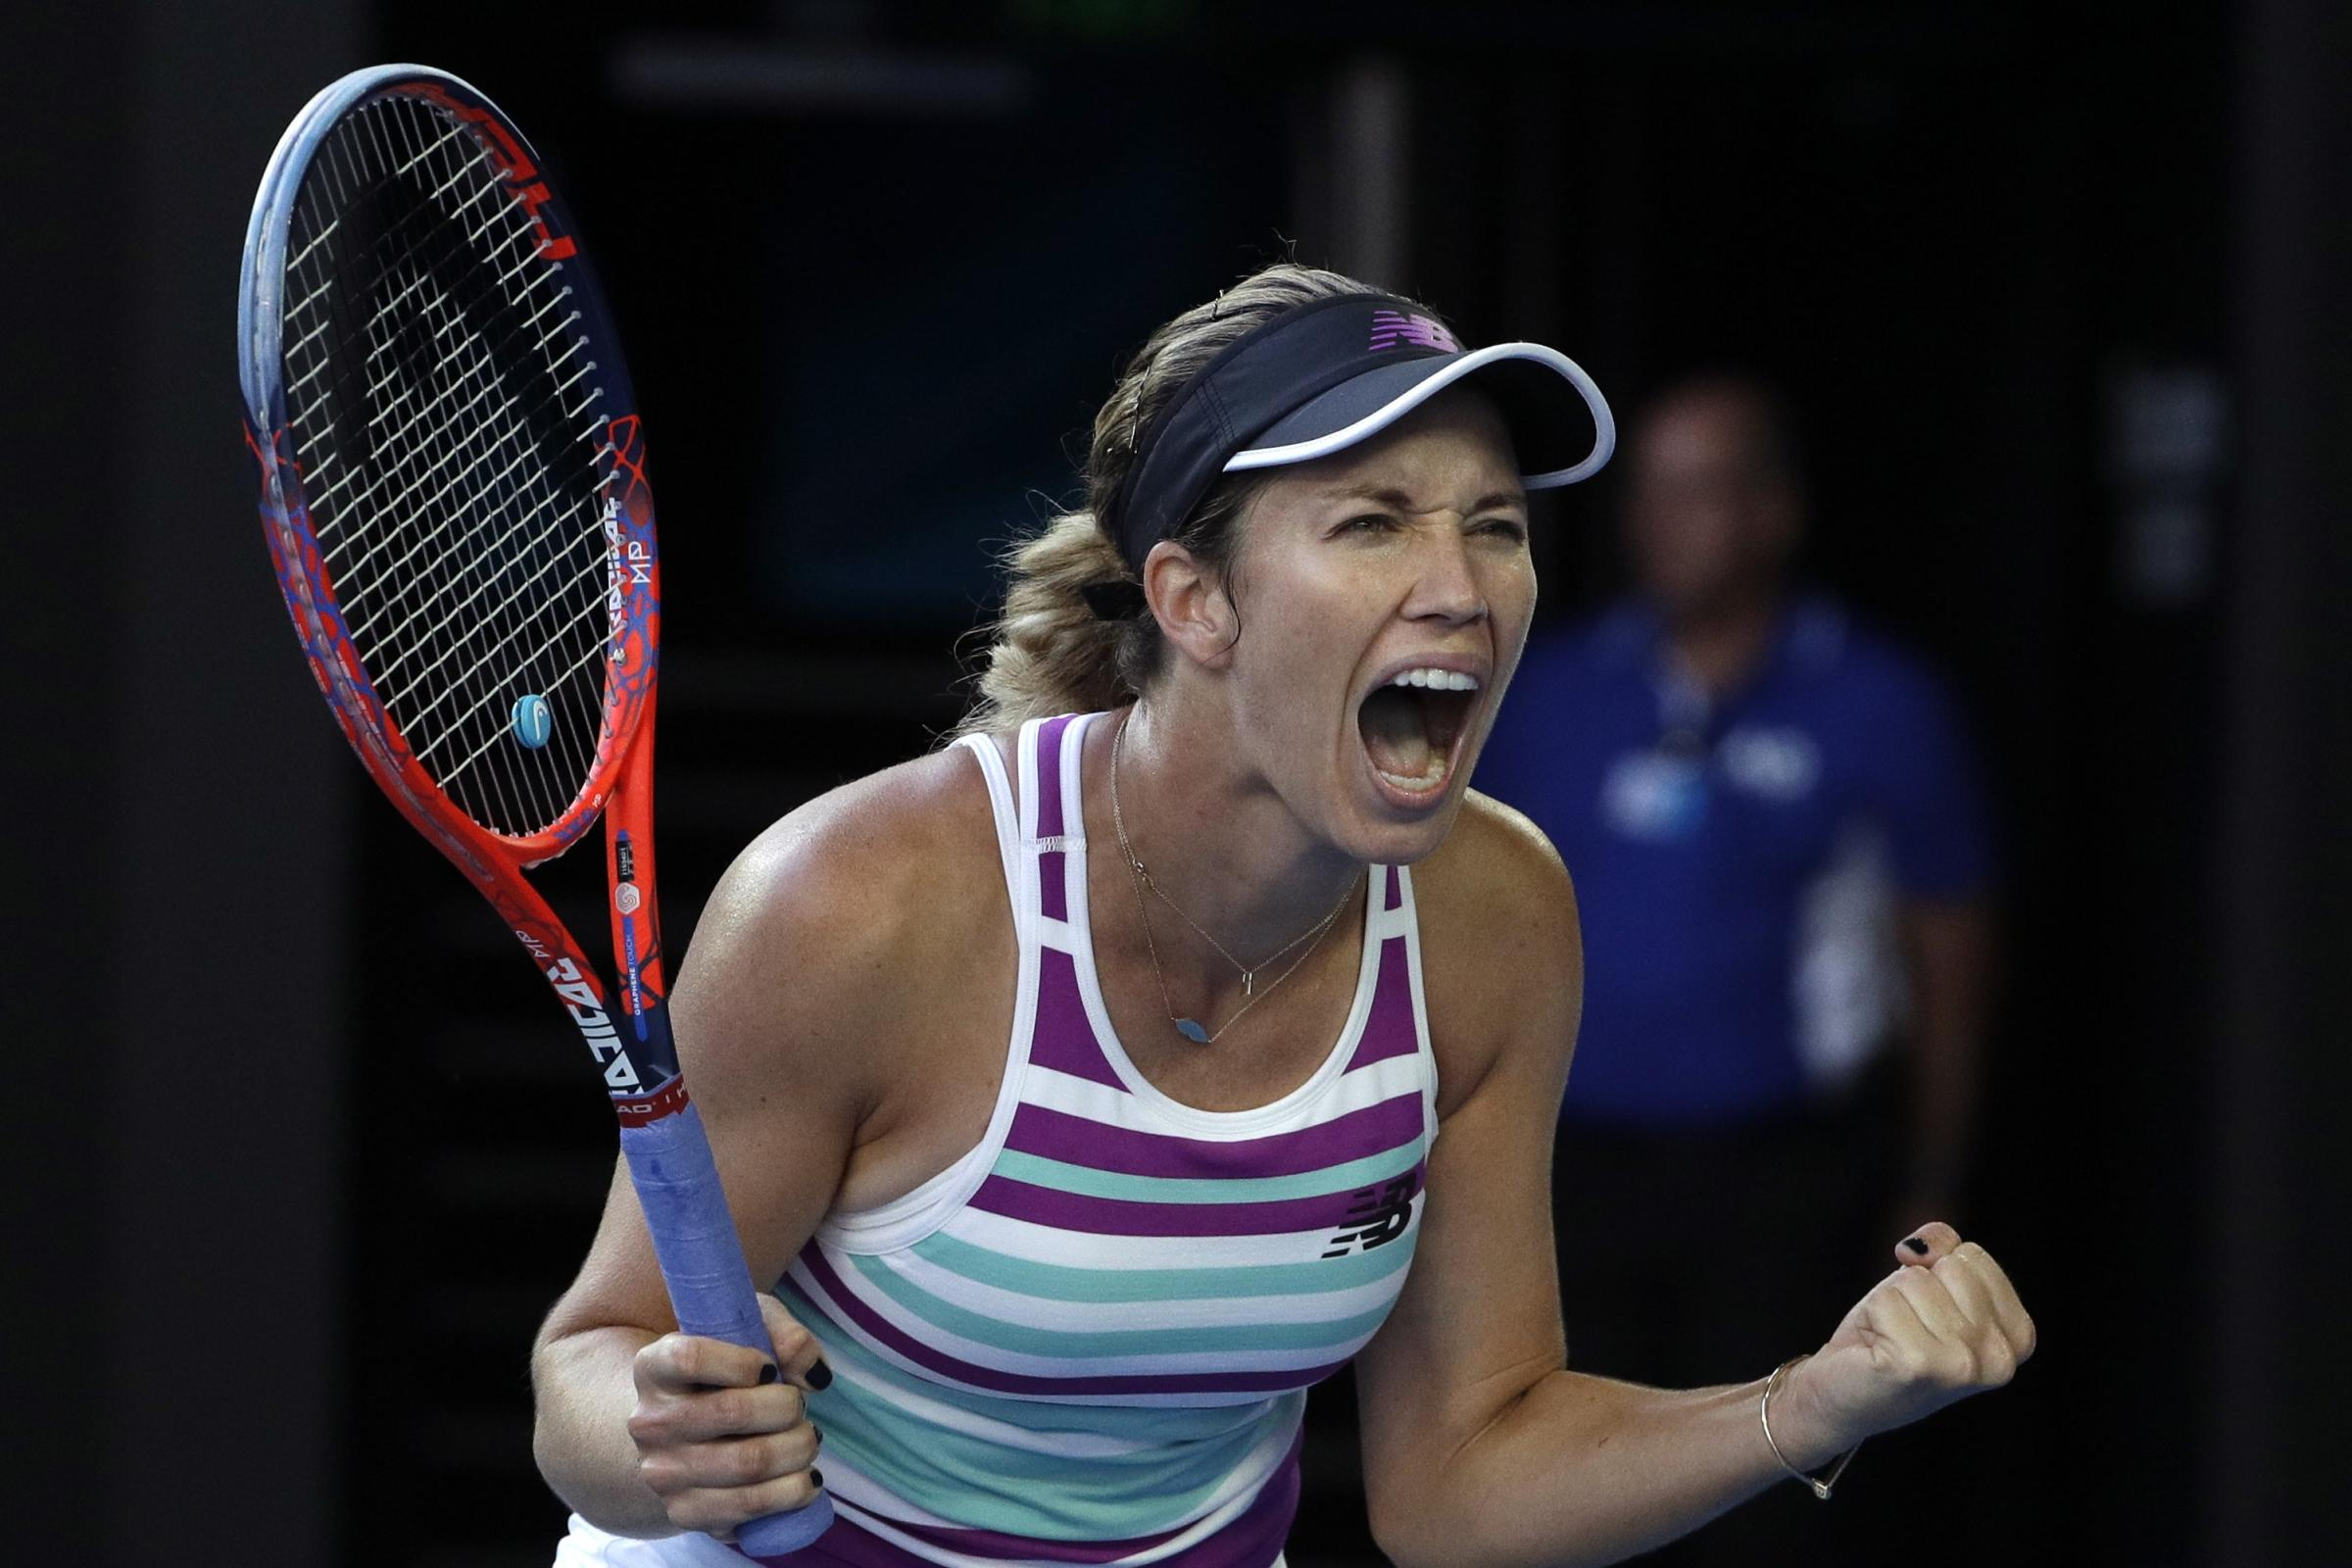 Danielle Collins shows her delight after beating Anastasia Pavlyuchenkova